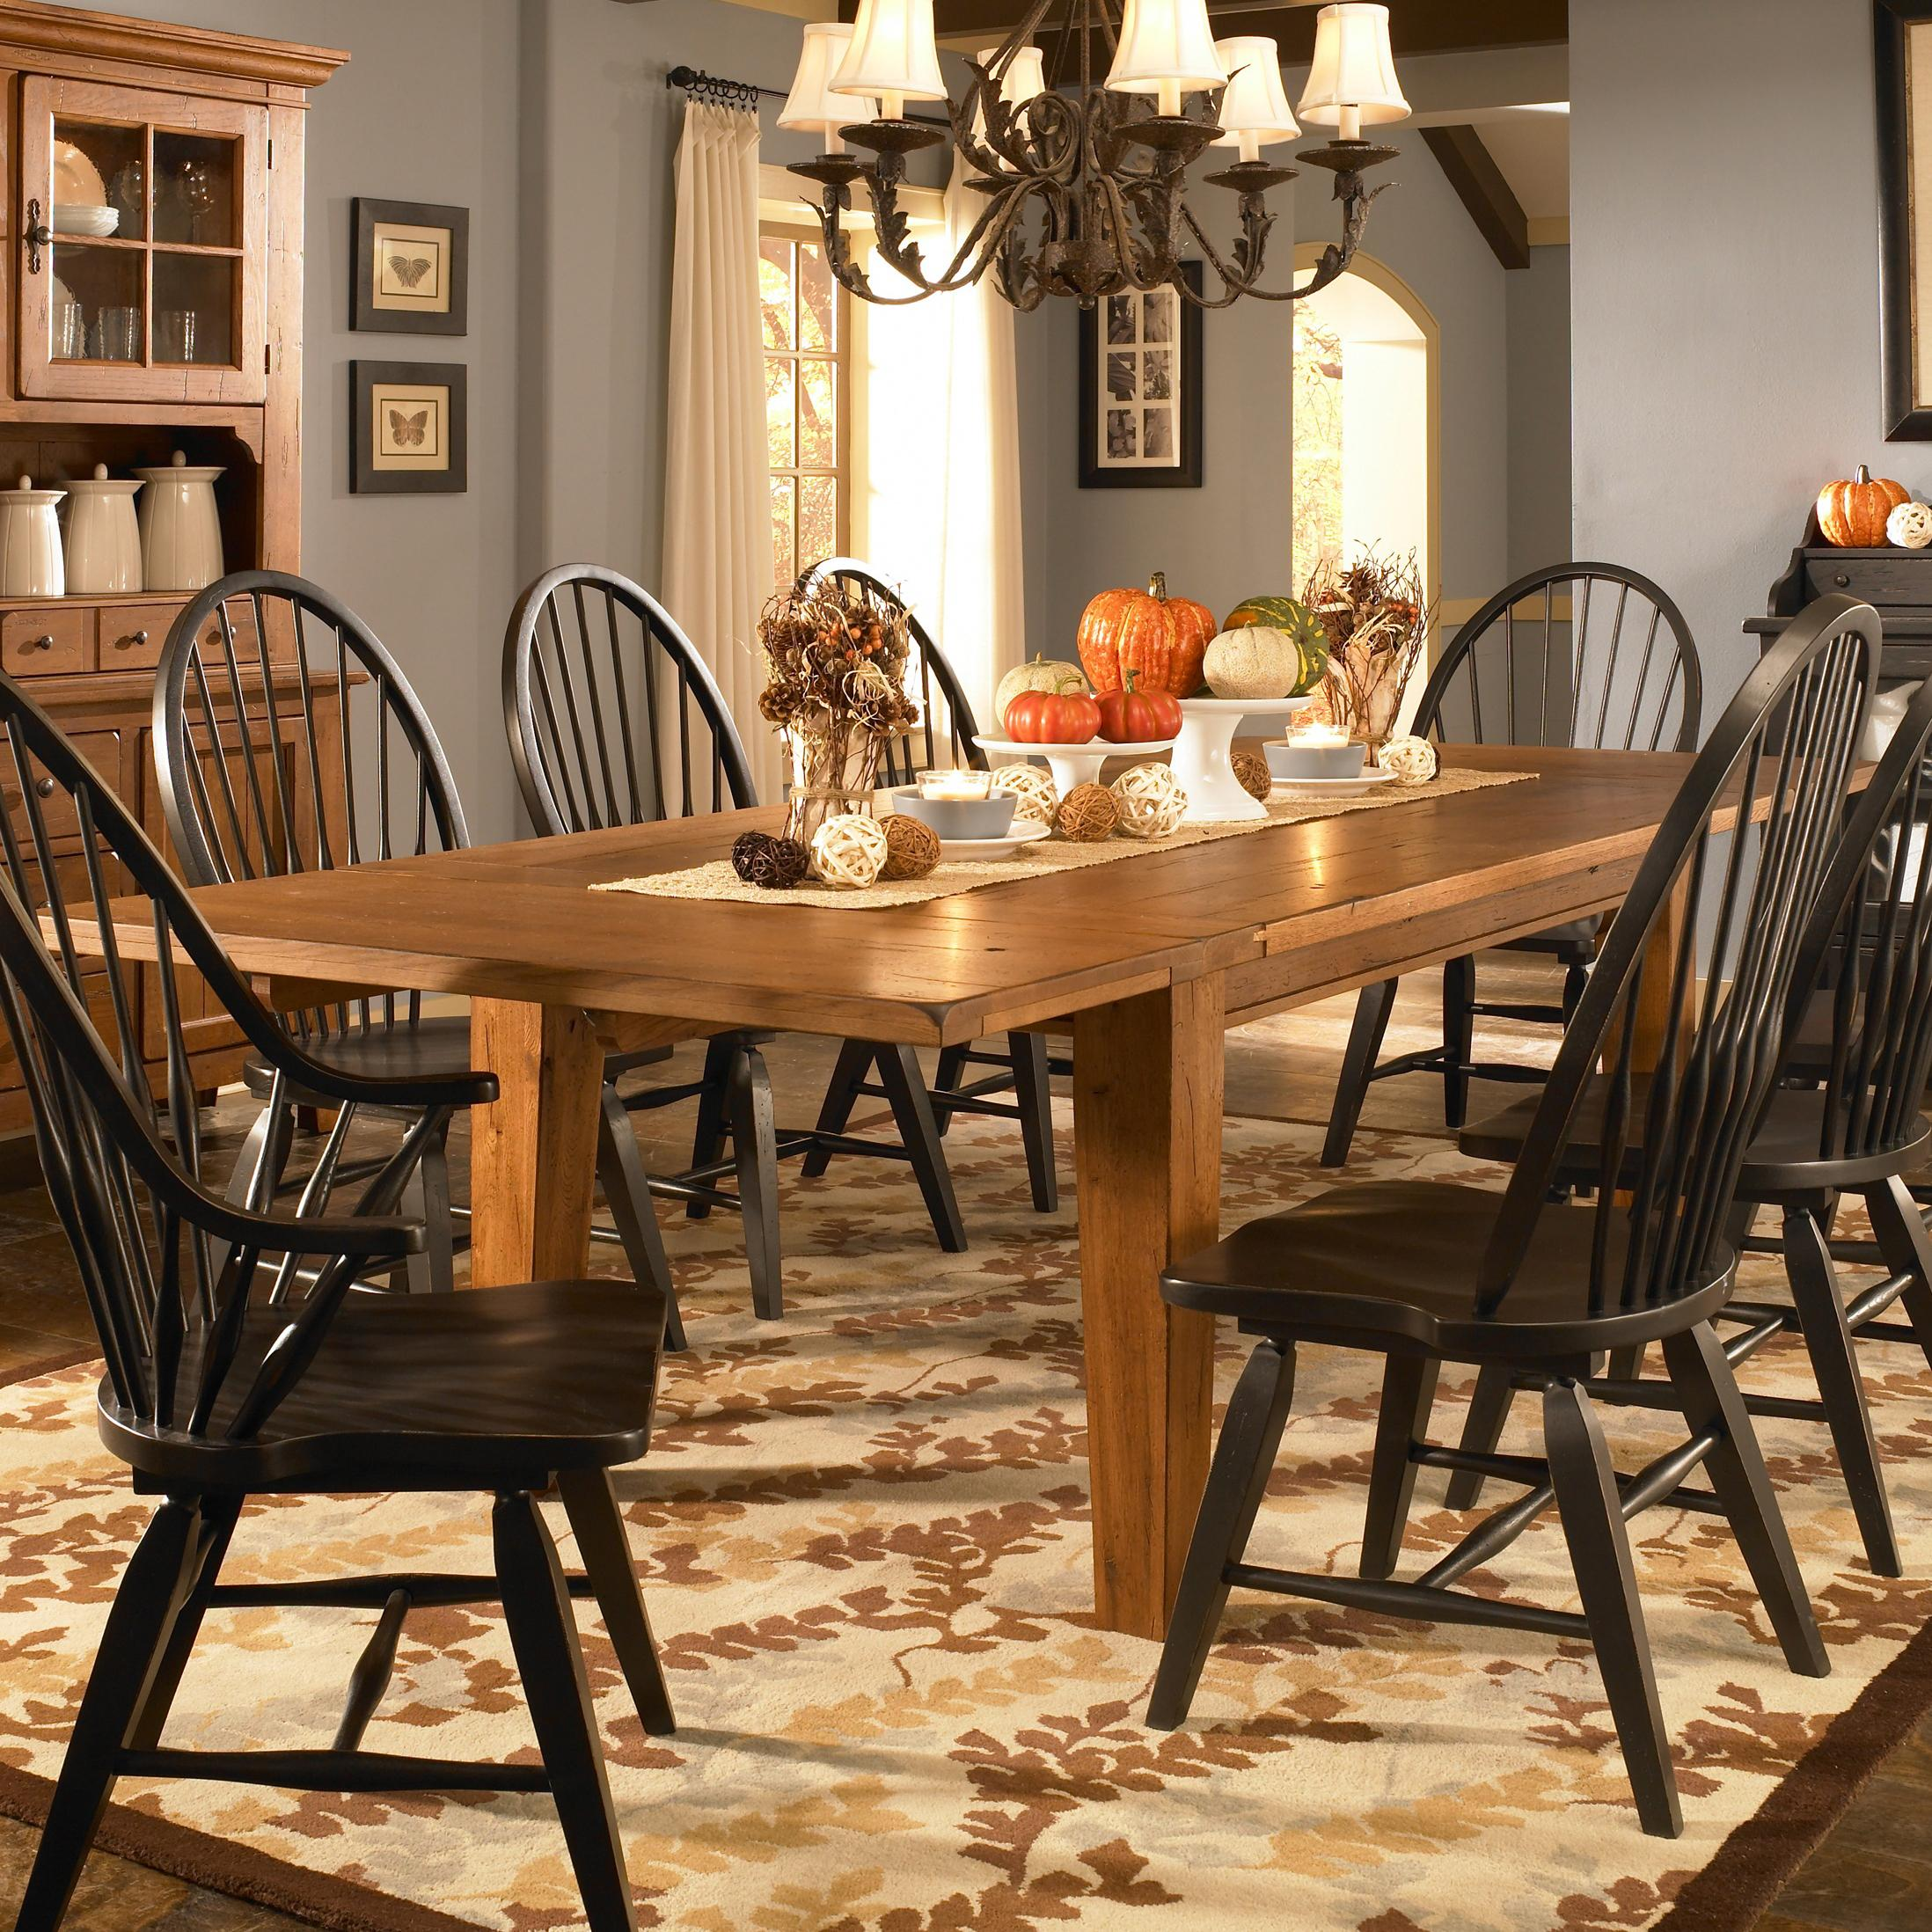 Attic Heirlooms Dining Table And 6 Chairs By Broyhill Furniture At Lindy S Company